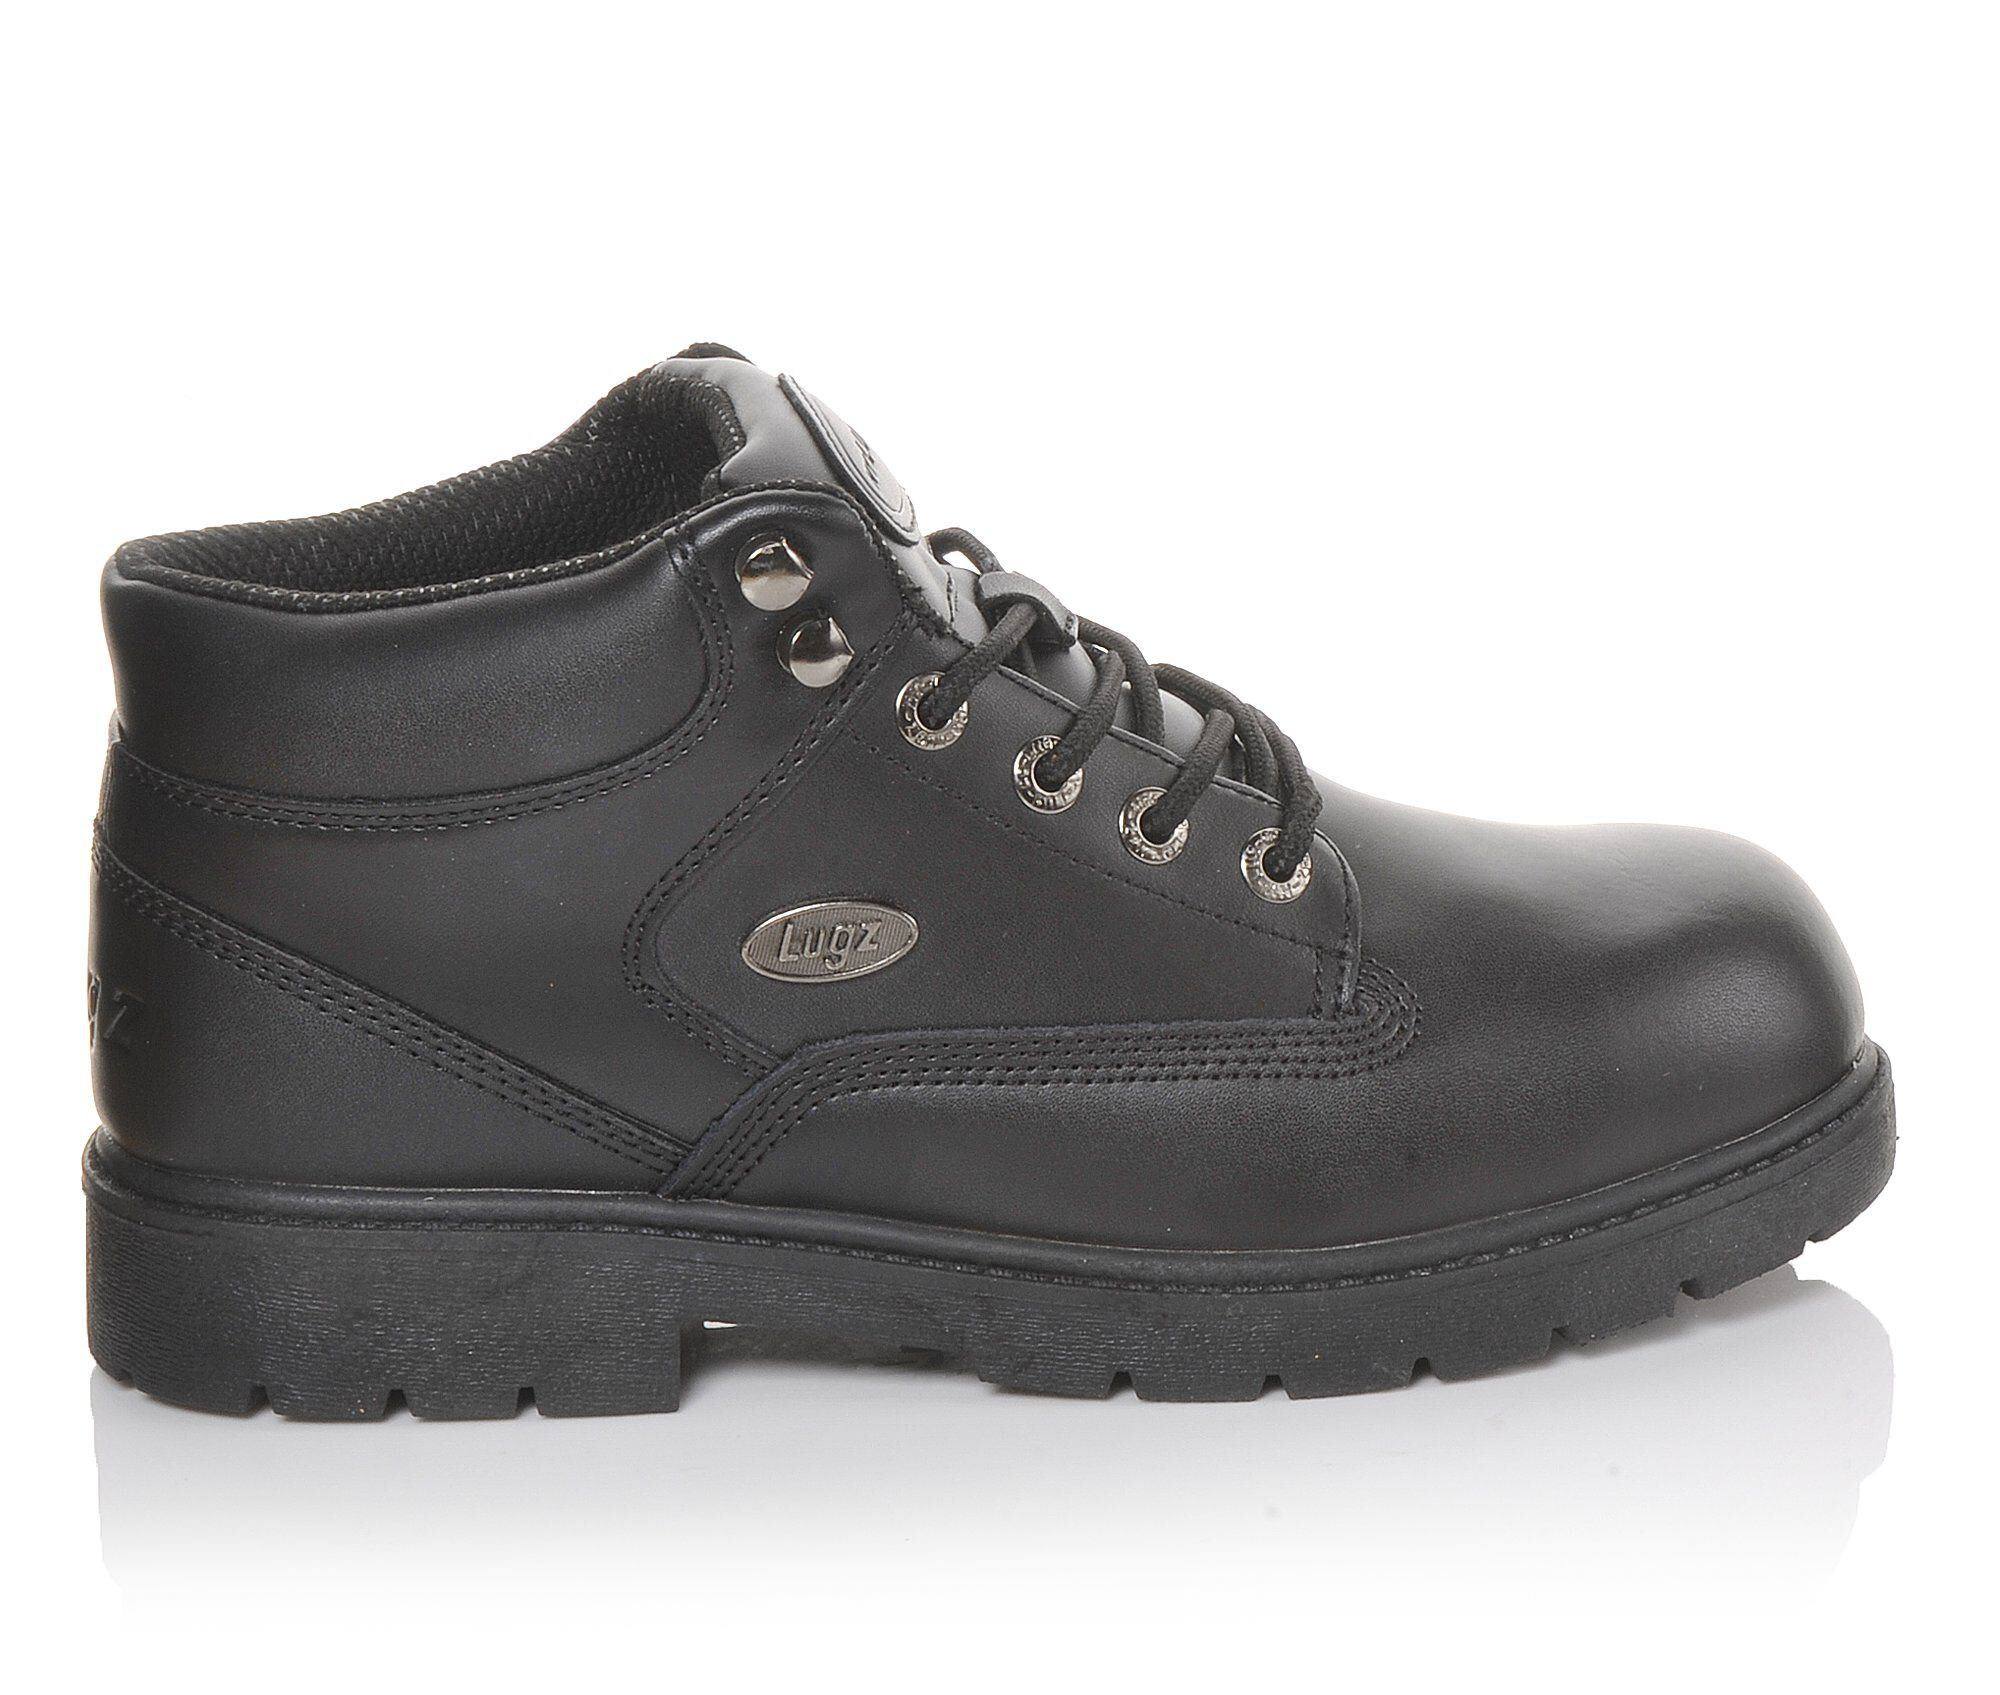 Lugz Zone HI Men's ... Slip-Resistant Boots clearance new cheap sale latest collections dSmhD1vb